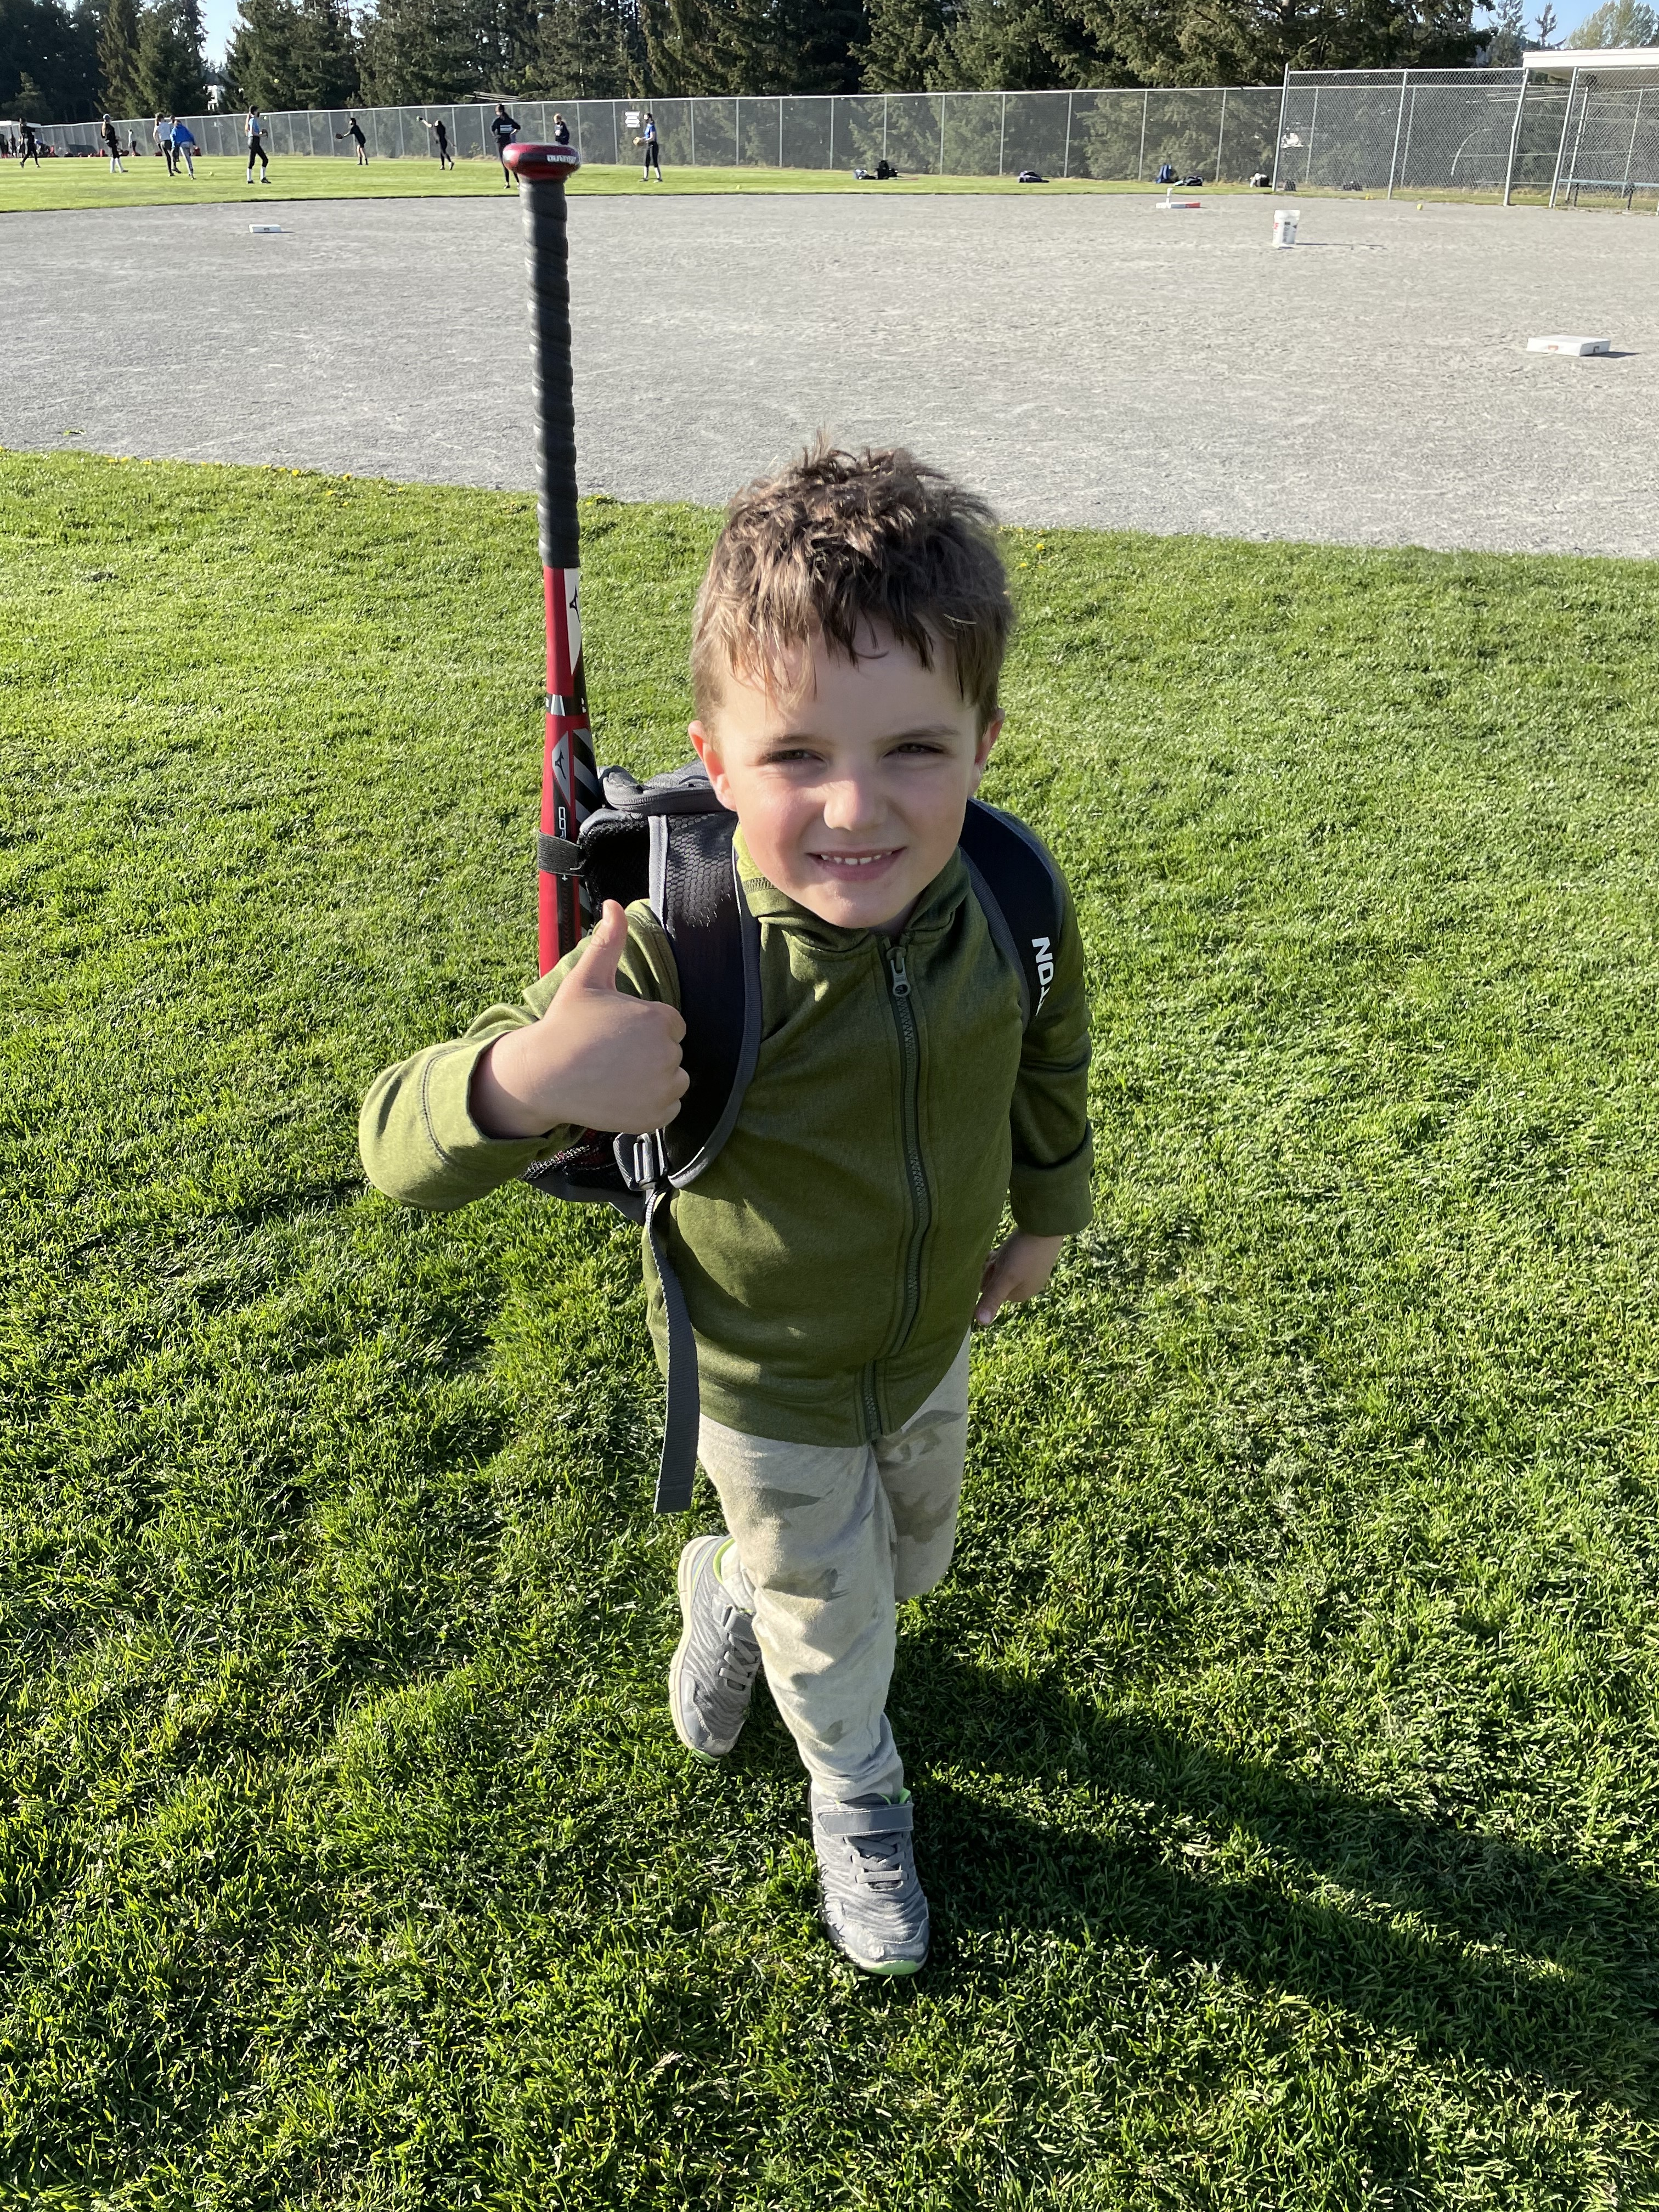 Griffin heading to tee ball practice